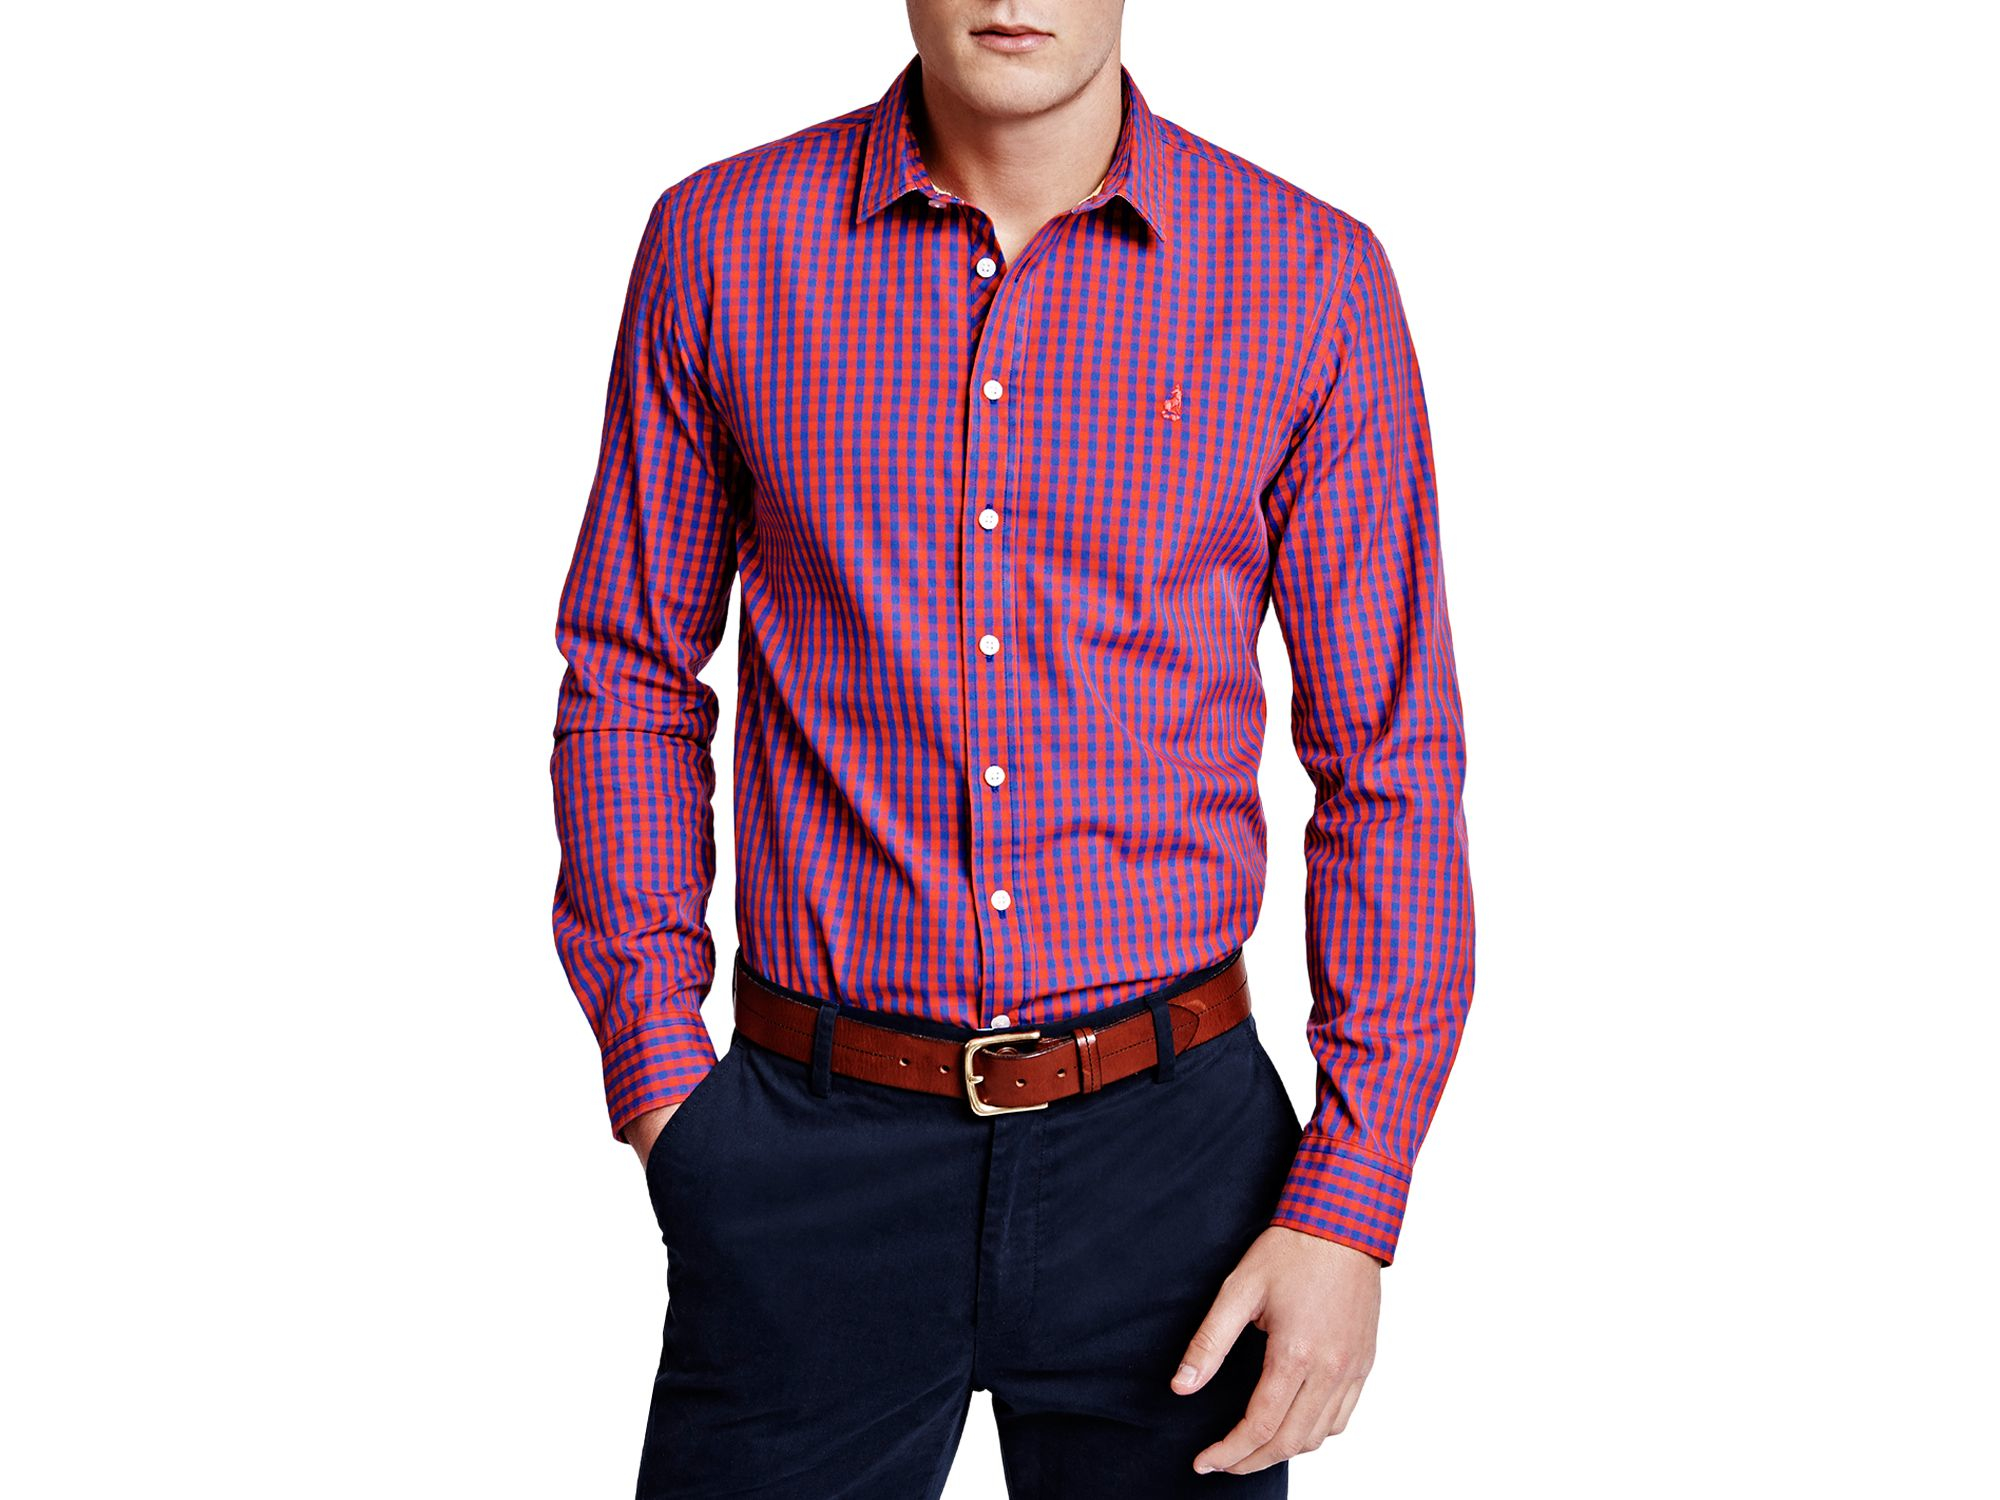 Lyst - Thomas pink Evenson Check Slim Fit Button Down Shirt in ...